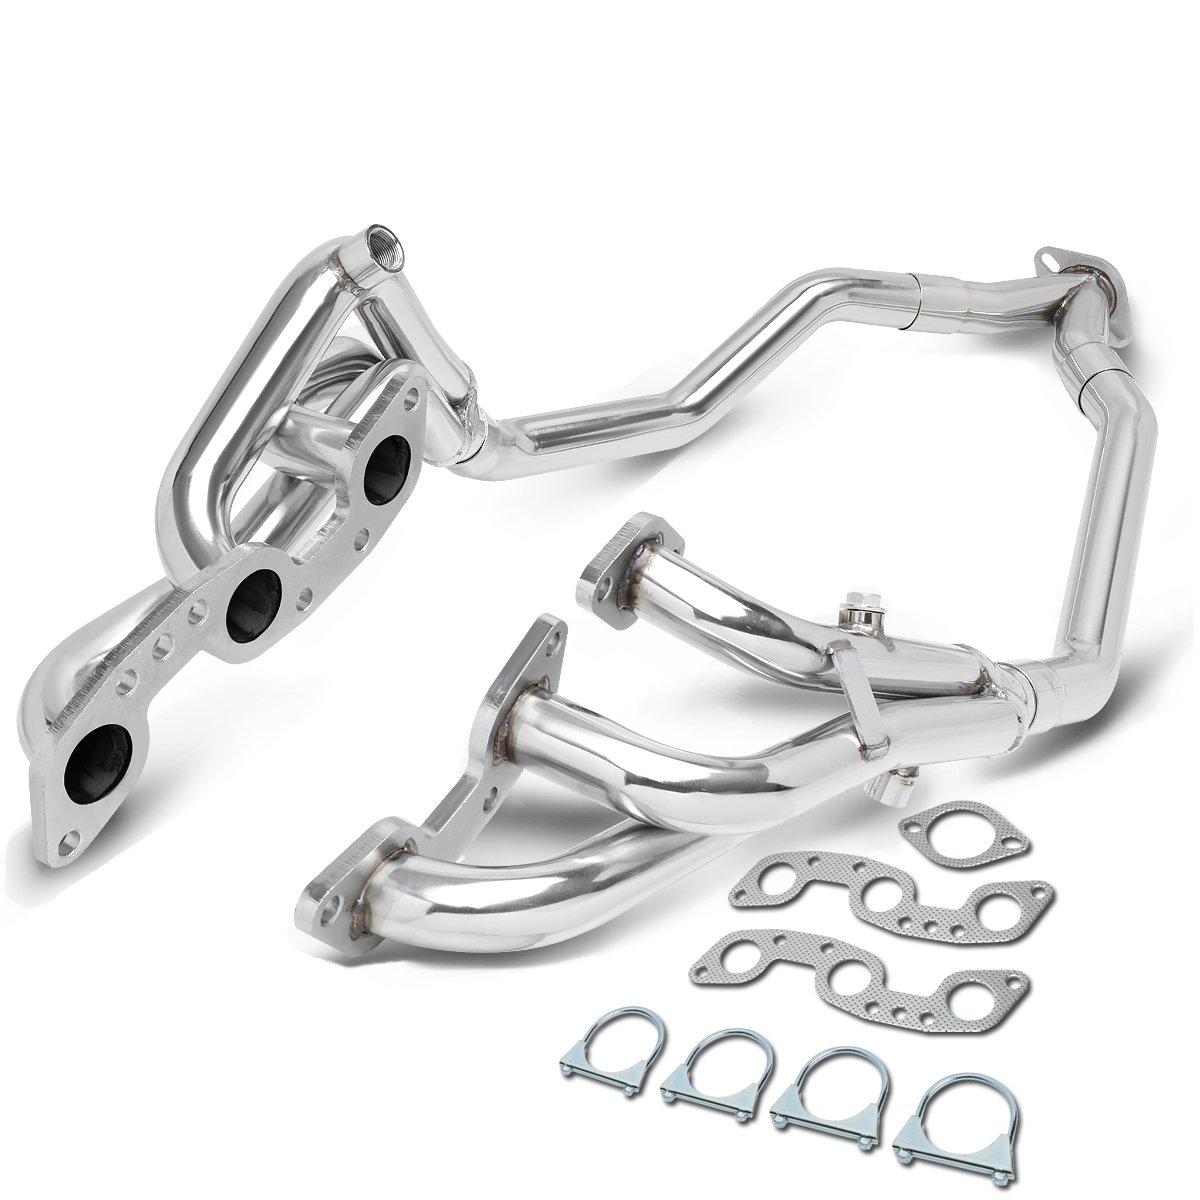 Amazon com: For Nissan 300ZX VG30E 3 0L SOHC Non-Turbo TRI-Y Shorty